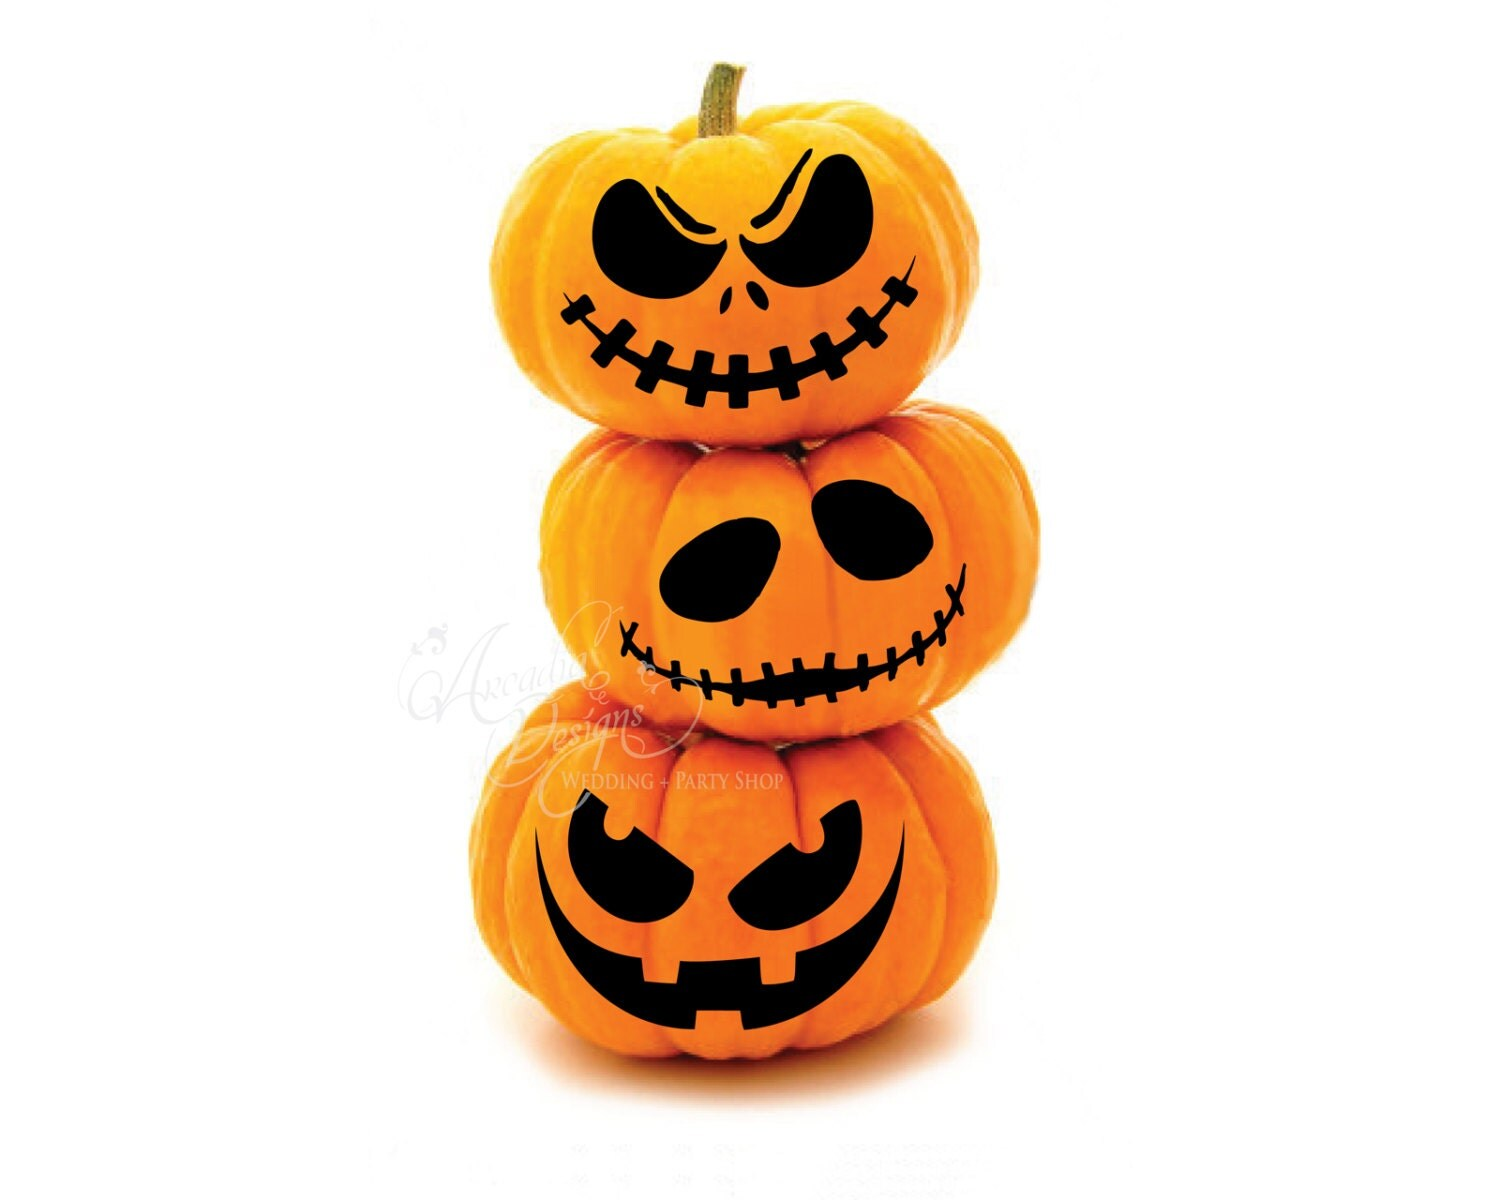 Printable Halloween Pumpkin Carving Pattern Stencil Scary